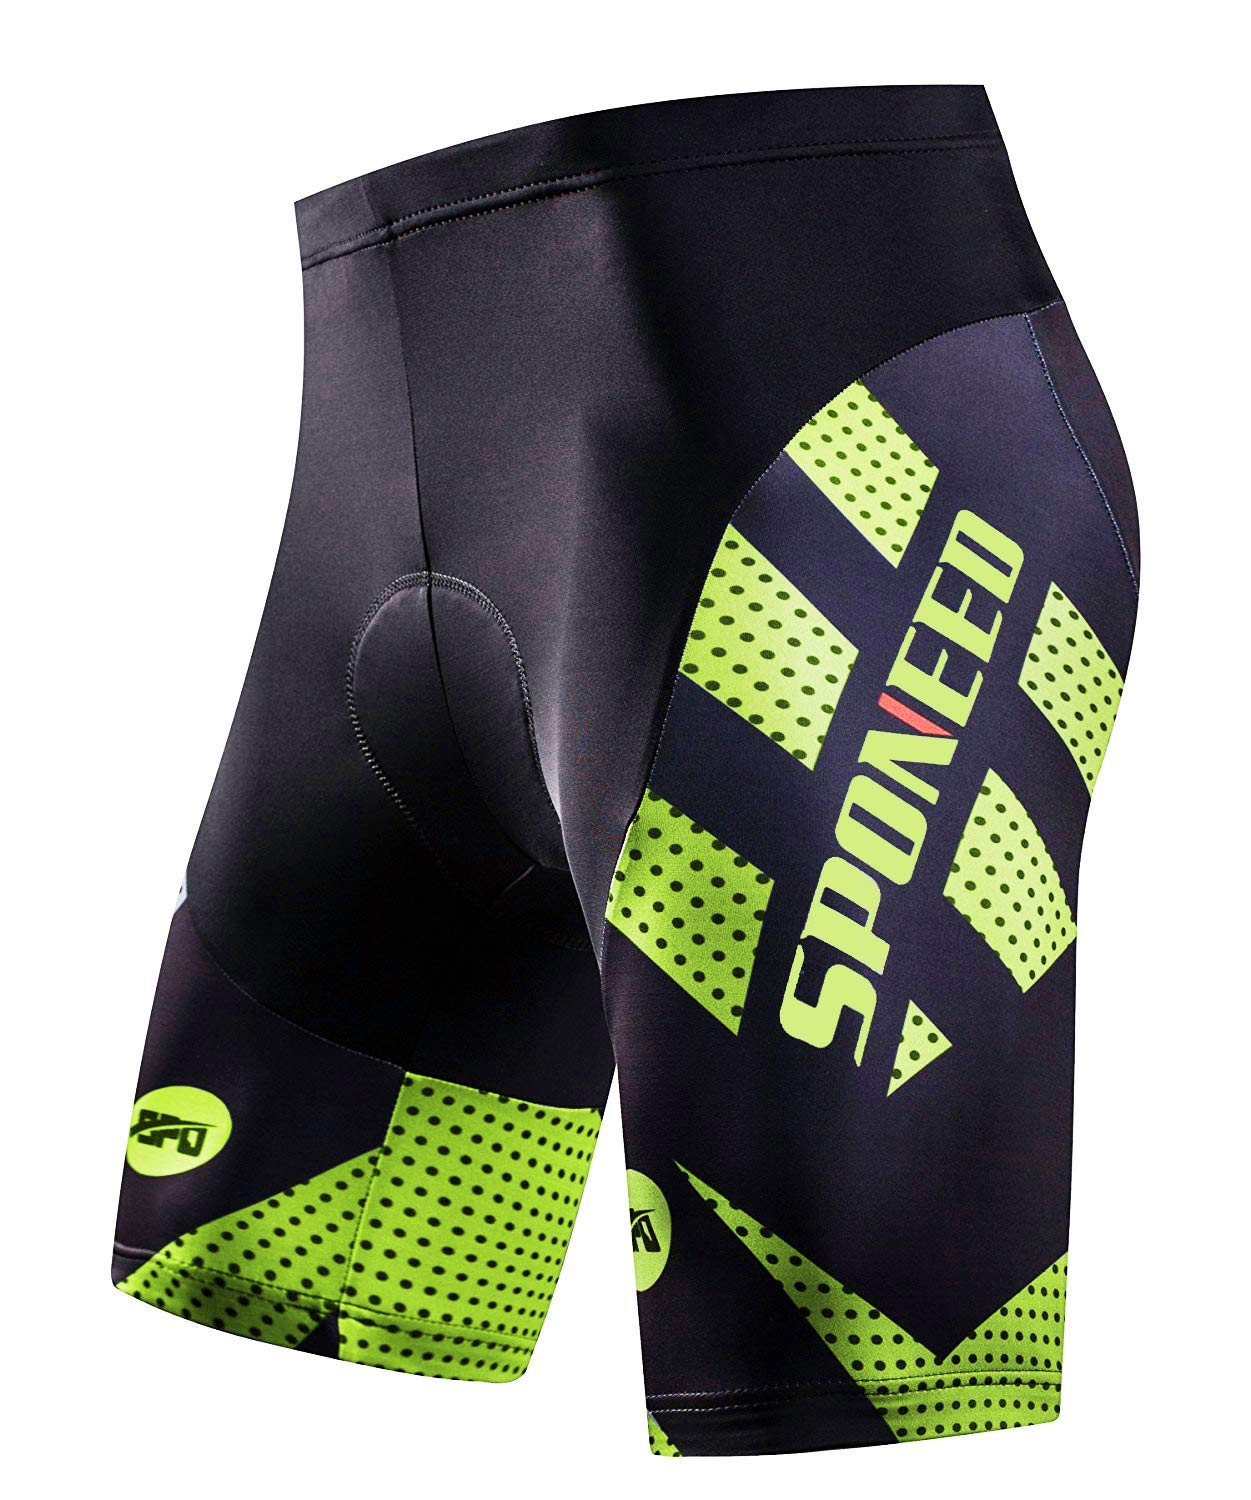 Sponeed Men's Cycling Shorts in green and black